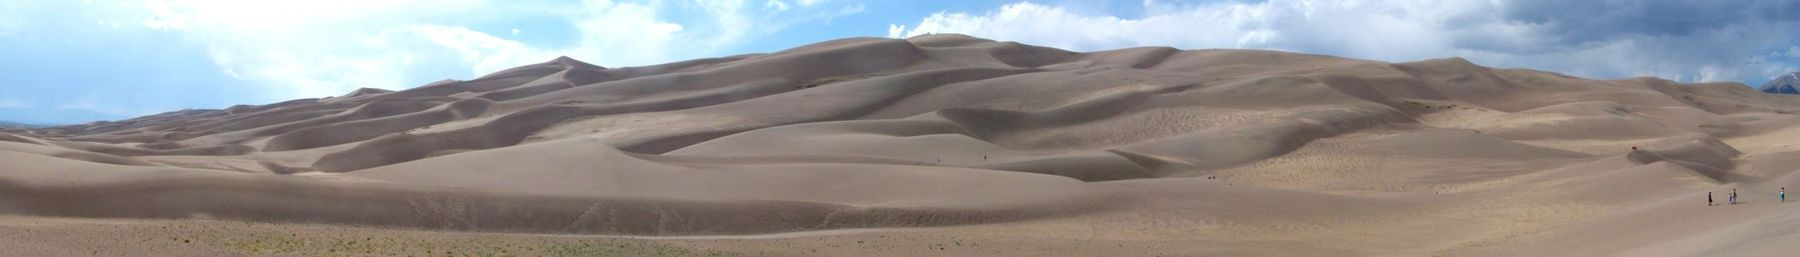 Great Sand Dunes National Park page banner.jpg